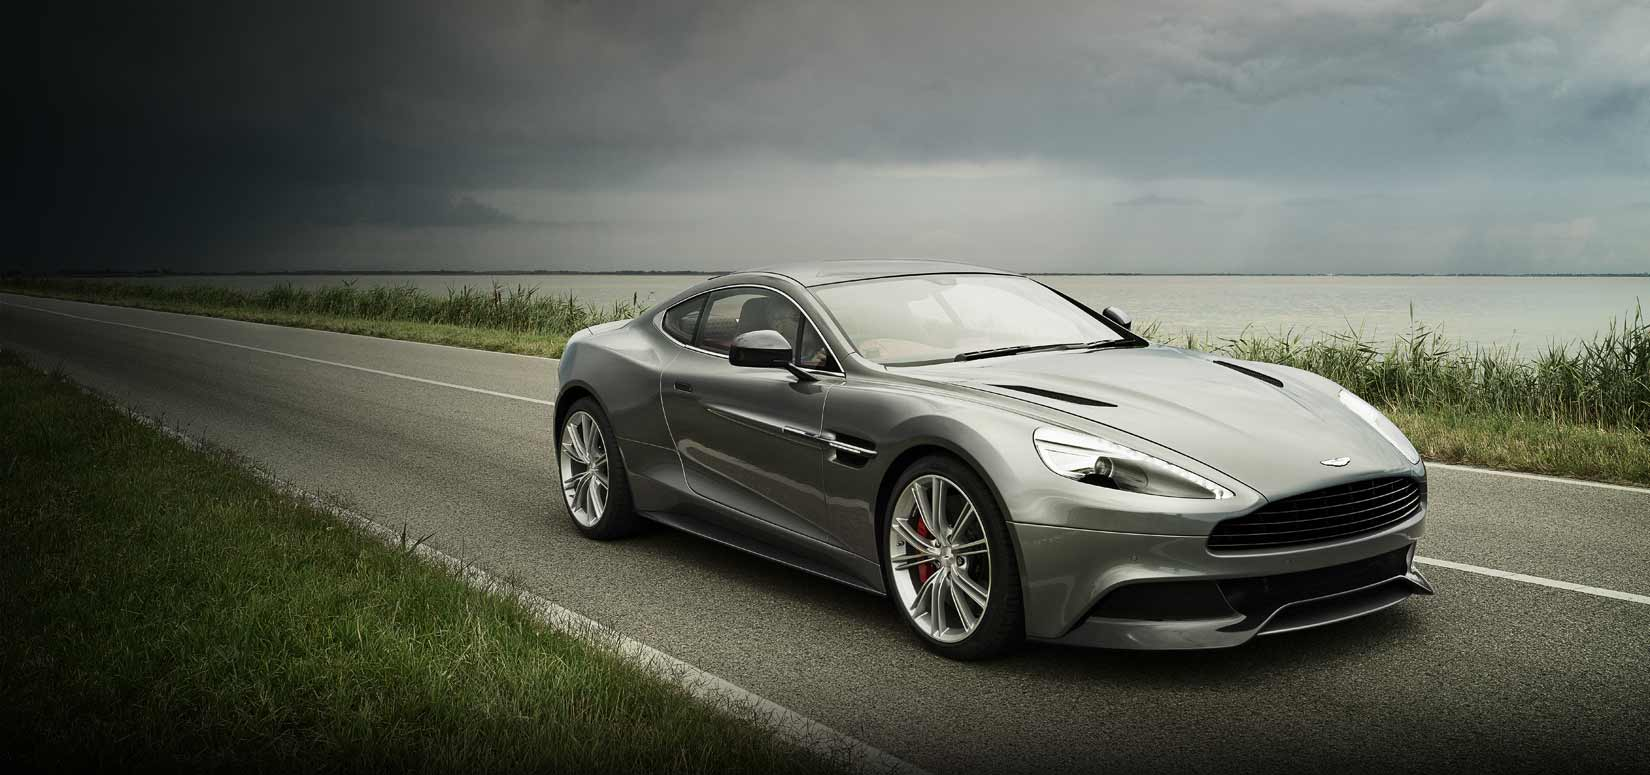 aston martin vanquish 2 essais fiabilit avis photos prix. Black Bedroom Furniture Sets. Home Design Ideas